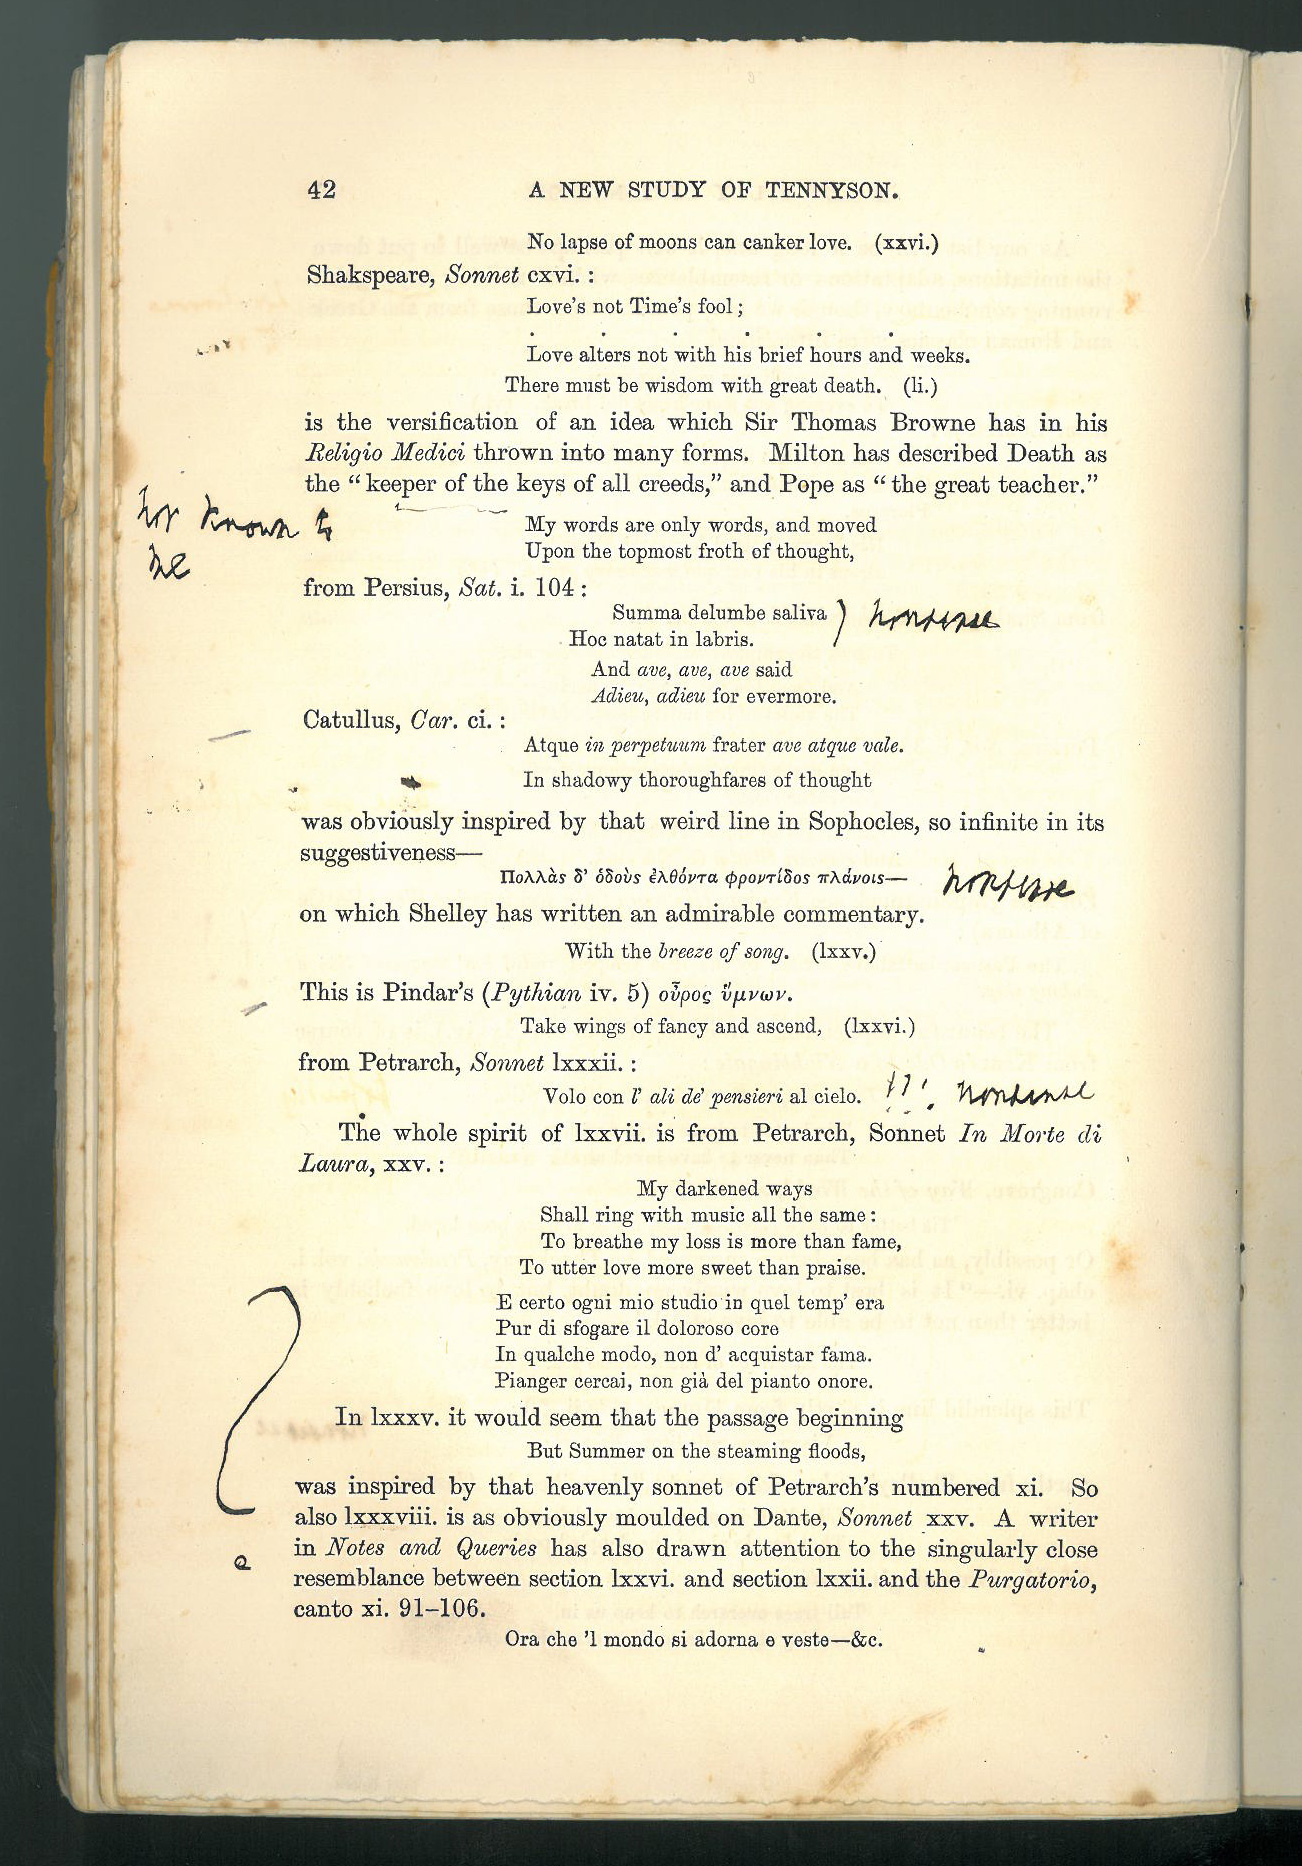 Alfred Tennyson's notes on A New Study of Tennyson